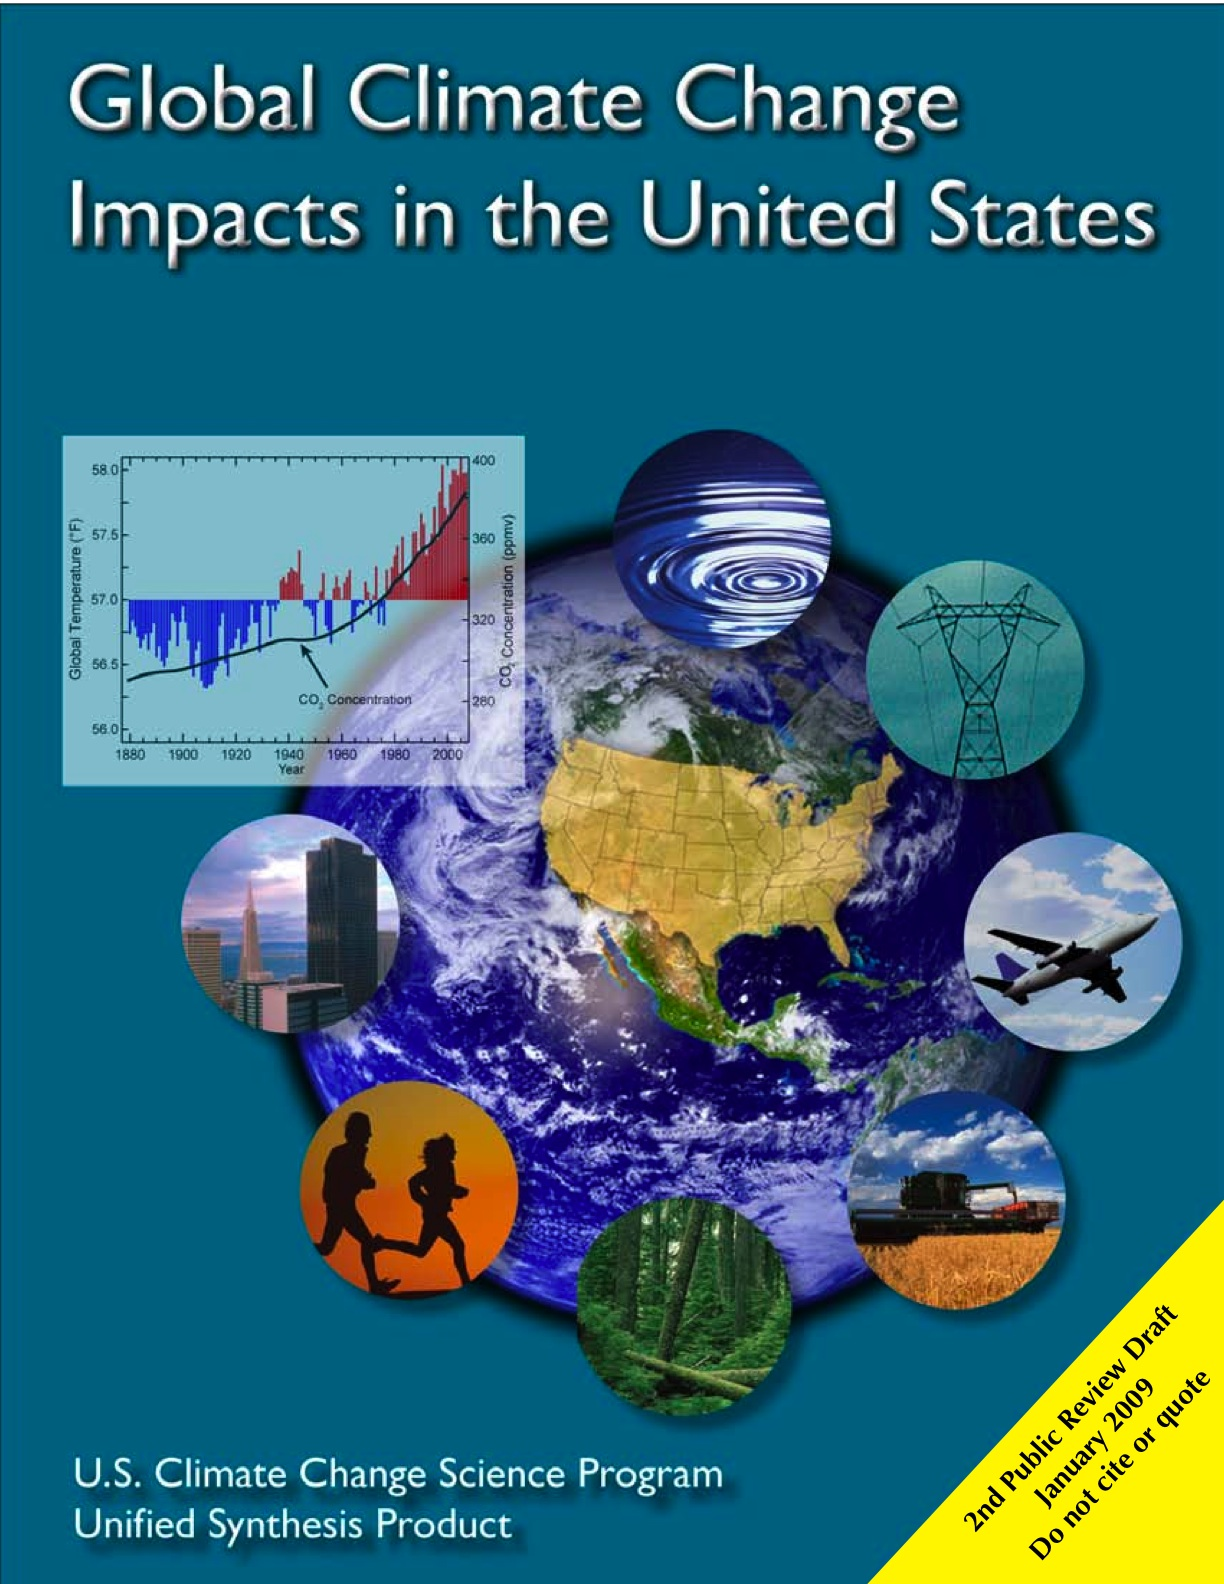 Global Climate Change: Impacts in the United States